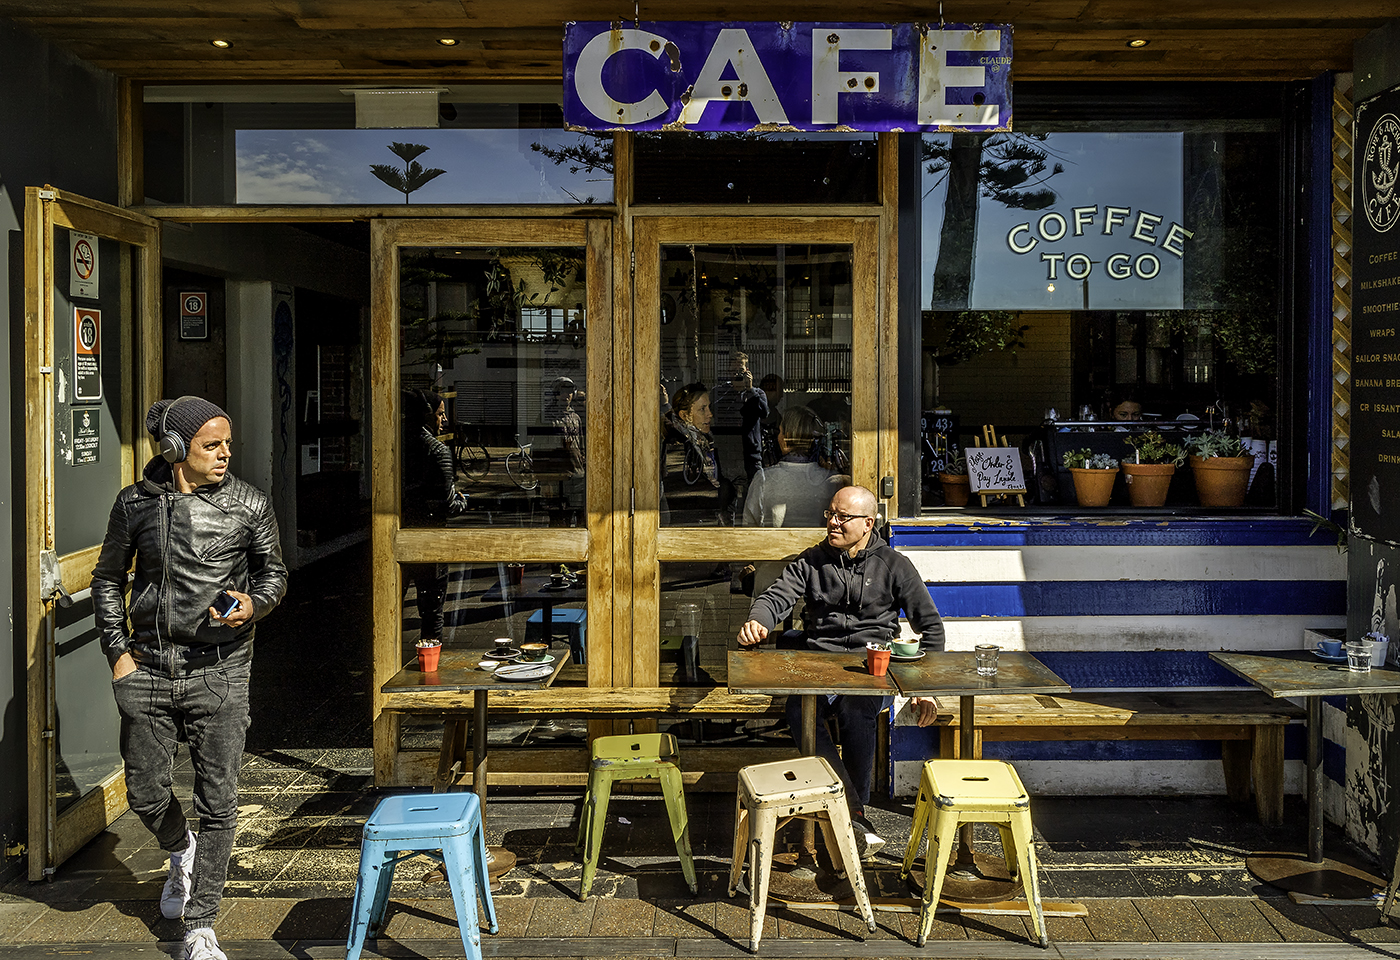 Image of cafe front